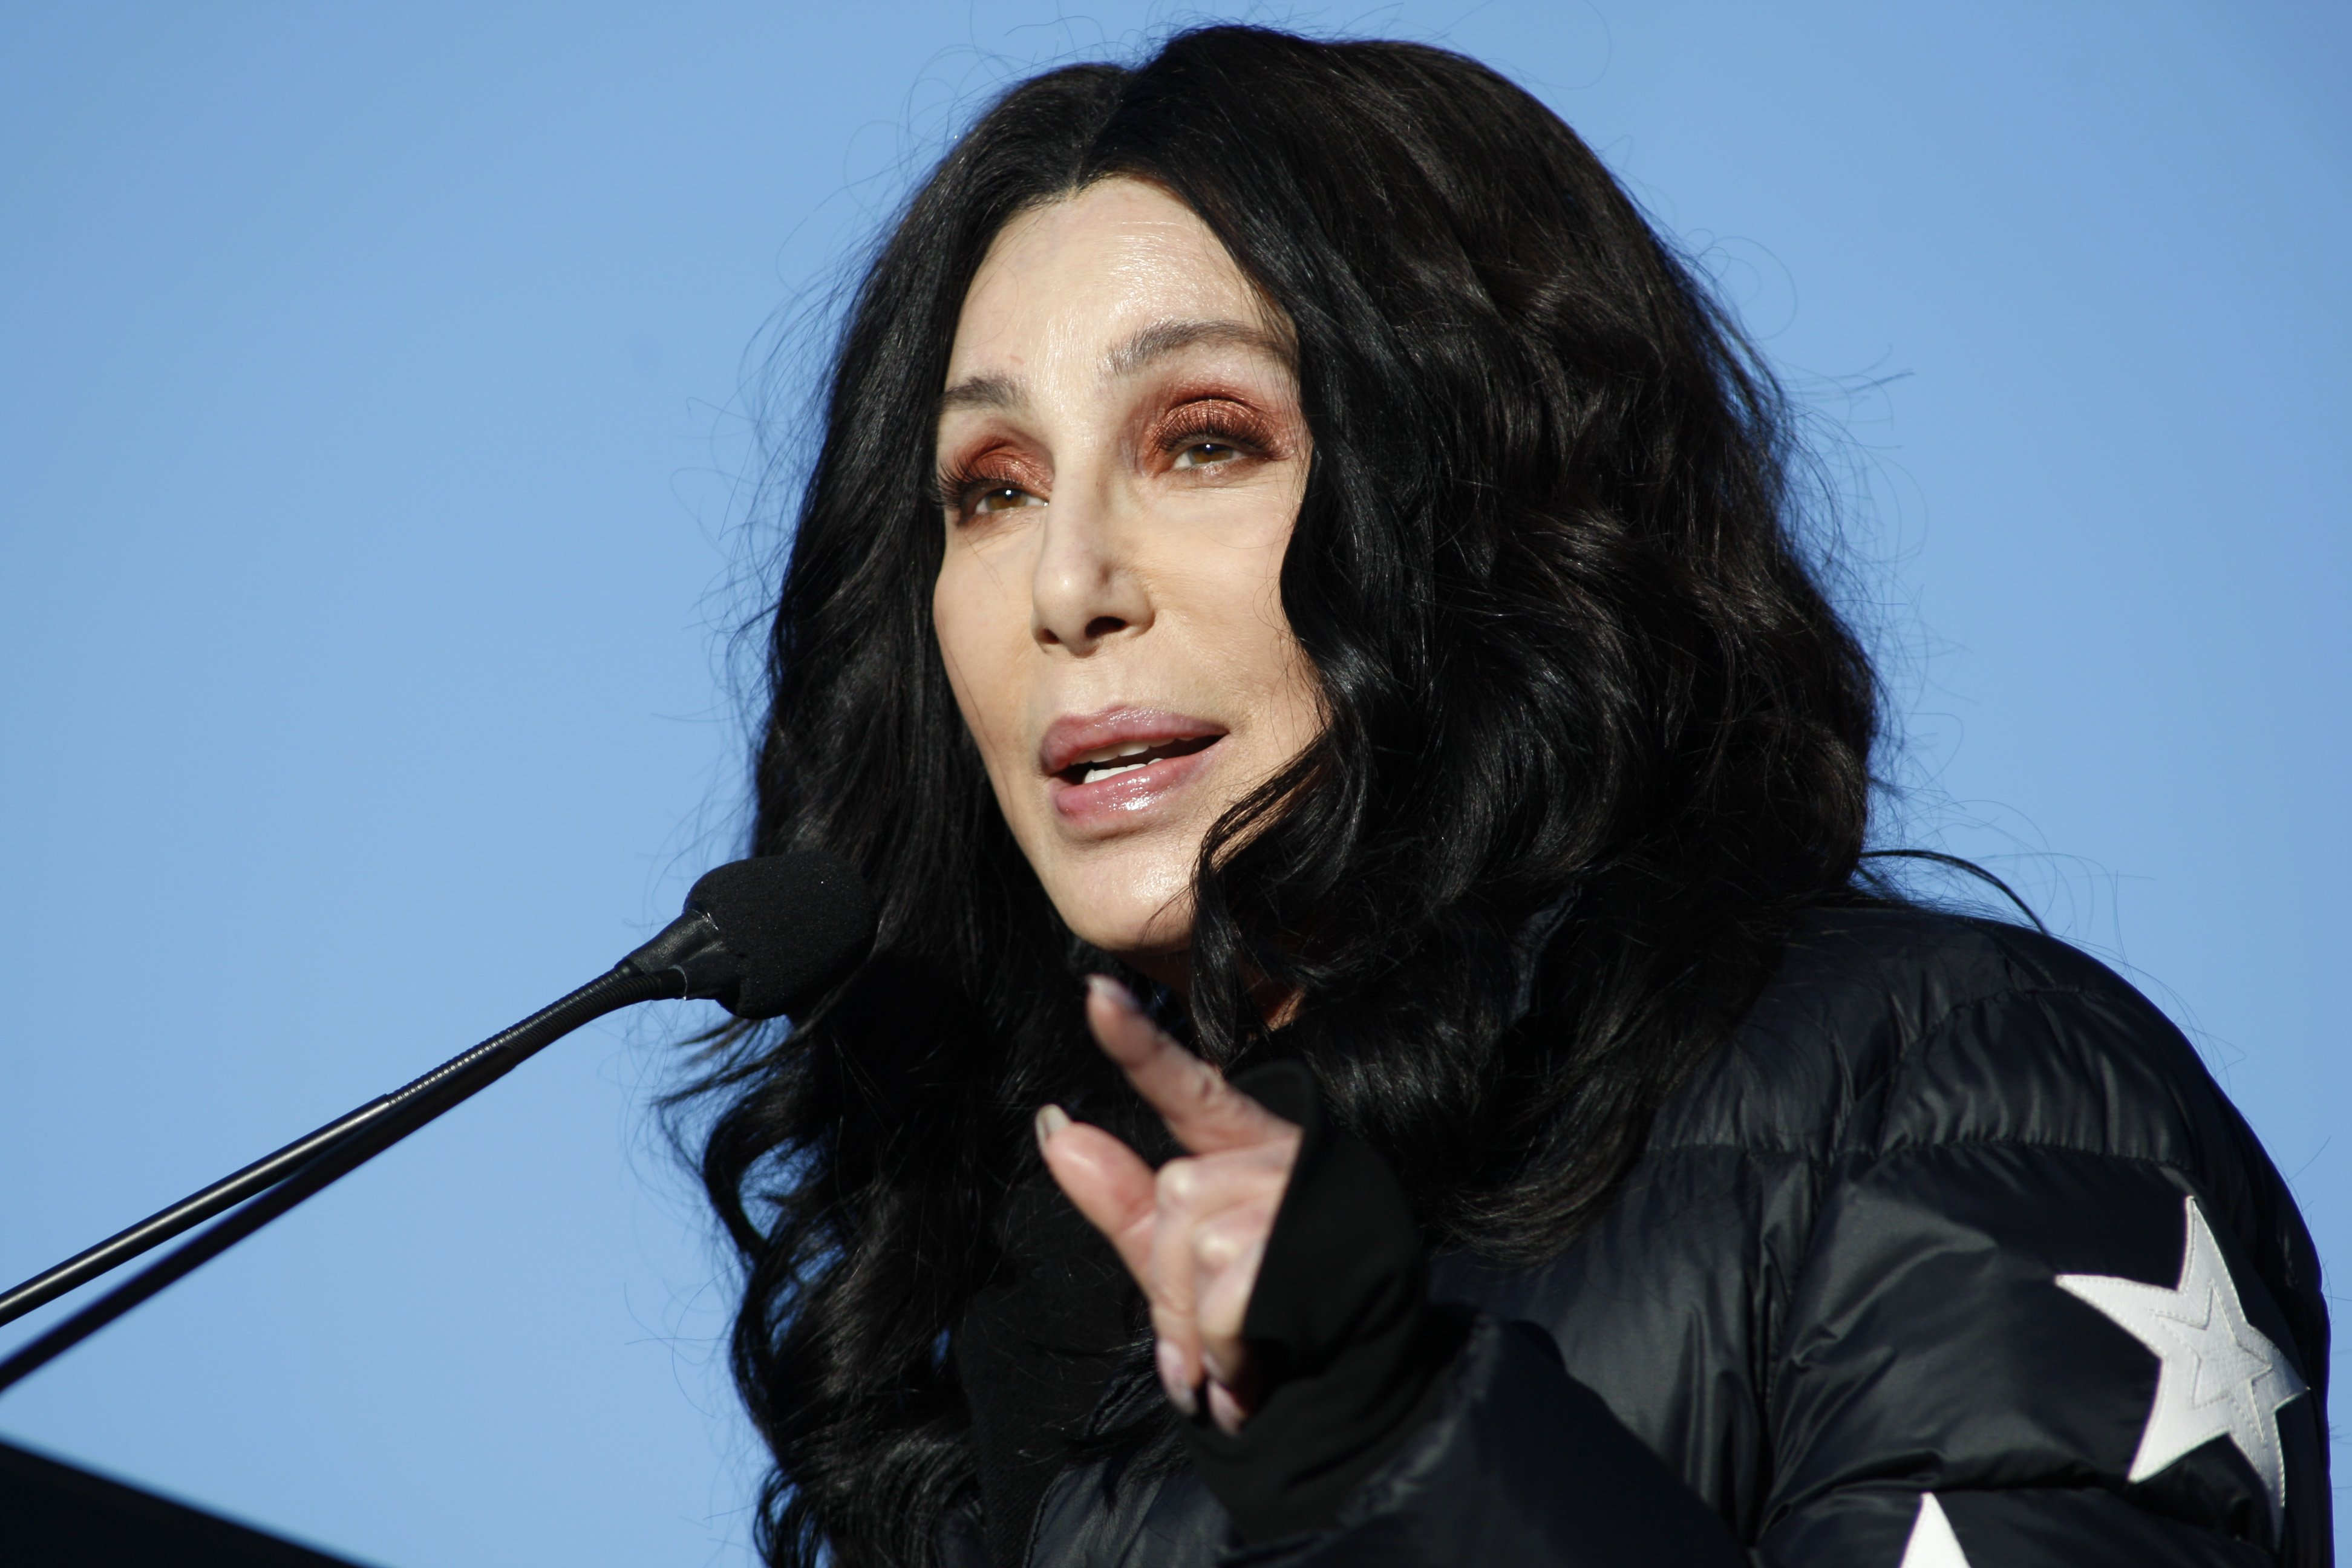 Cher on January 21, 2018, in Las Vegas, Nevada | Source: Getty Images